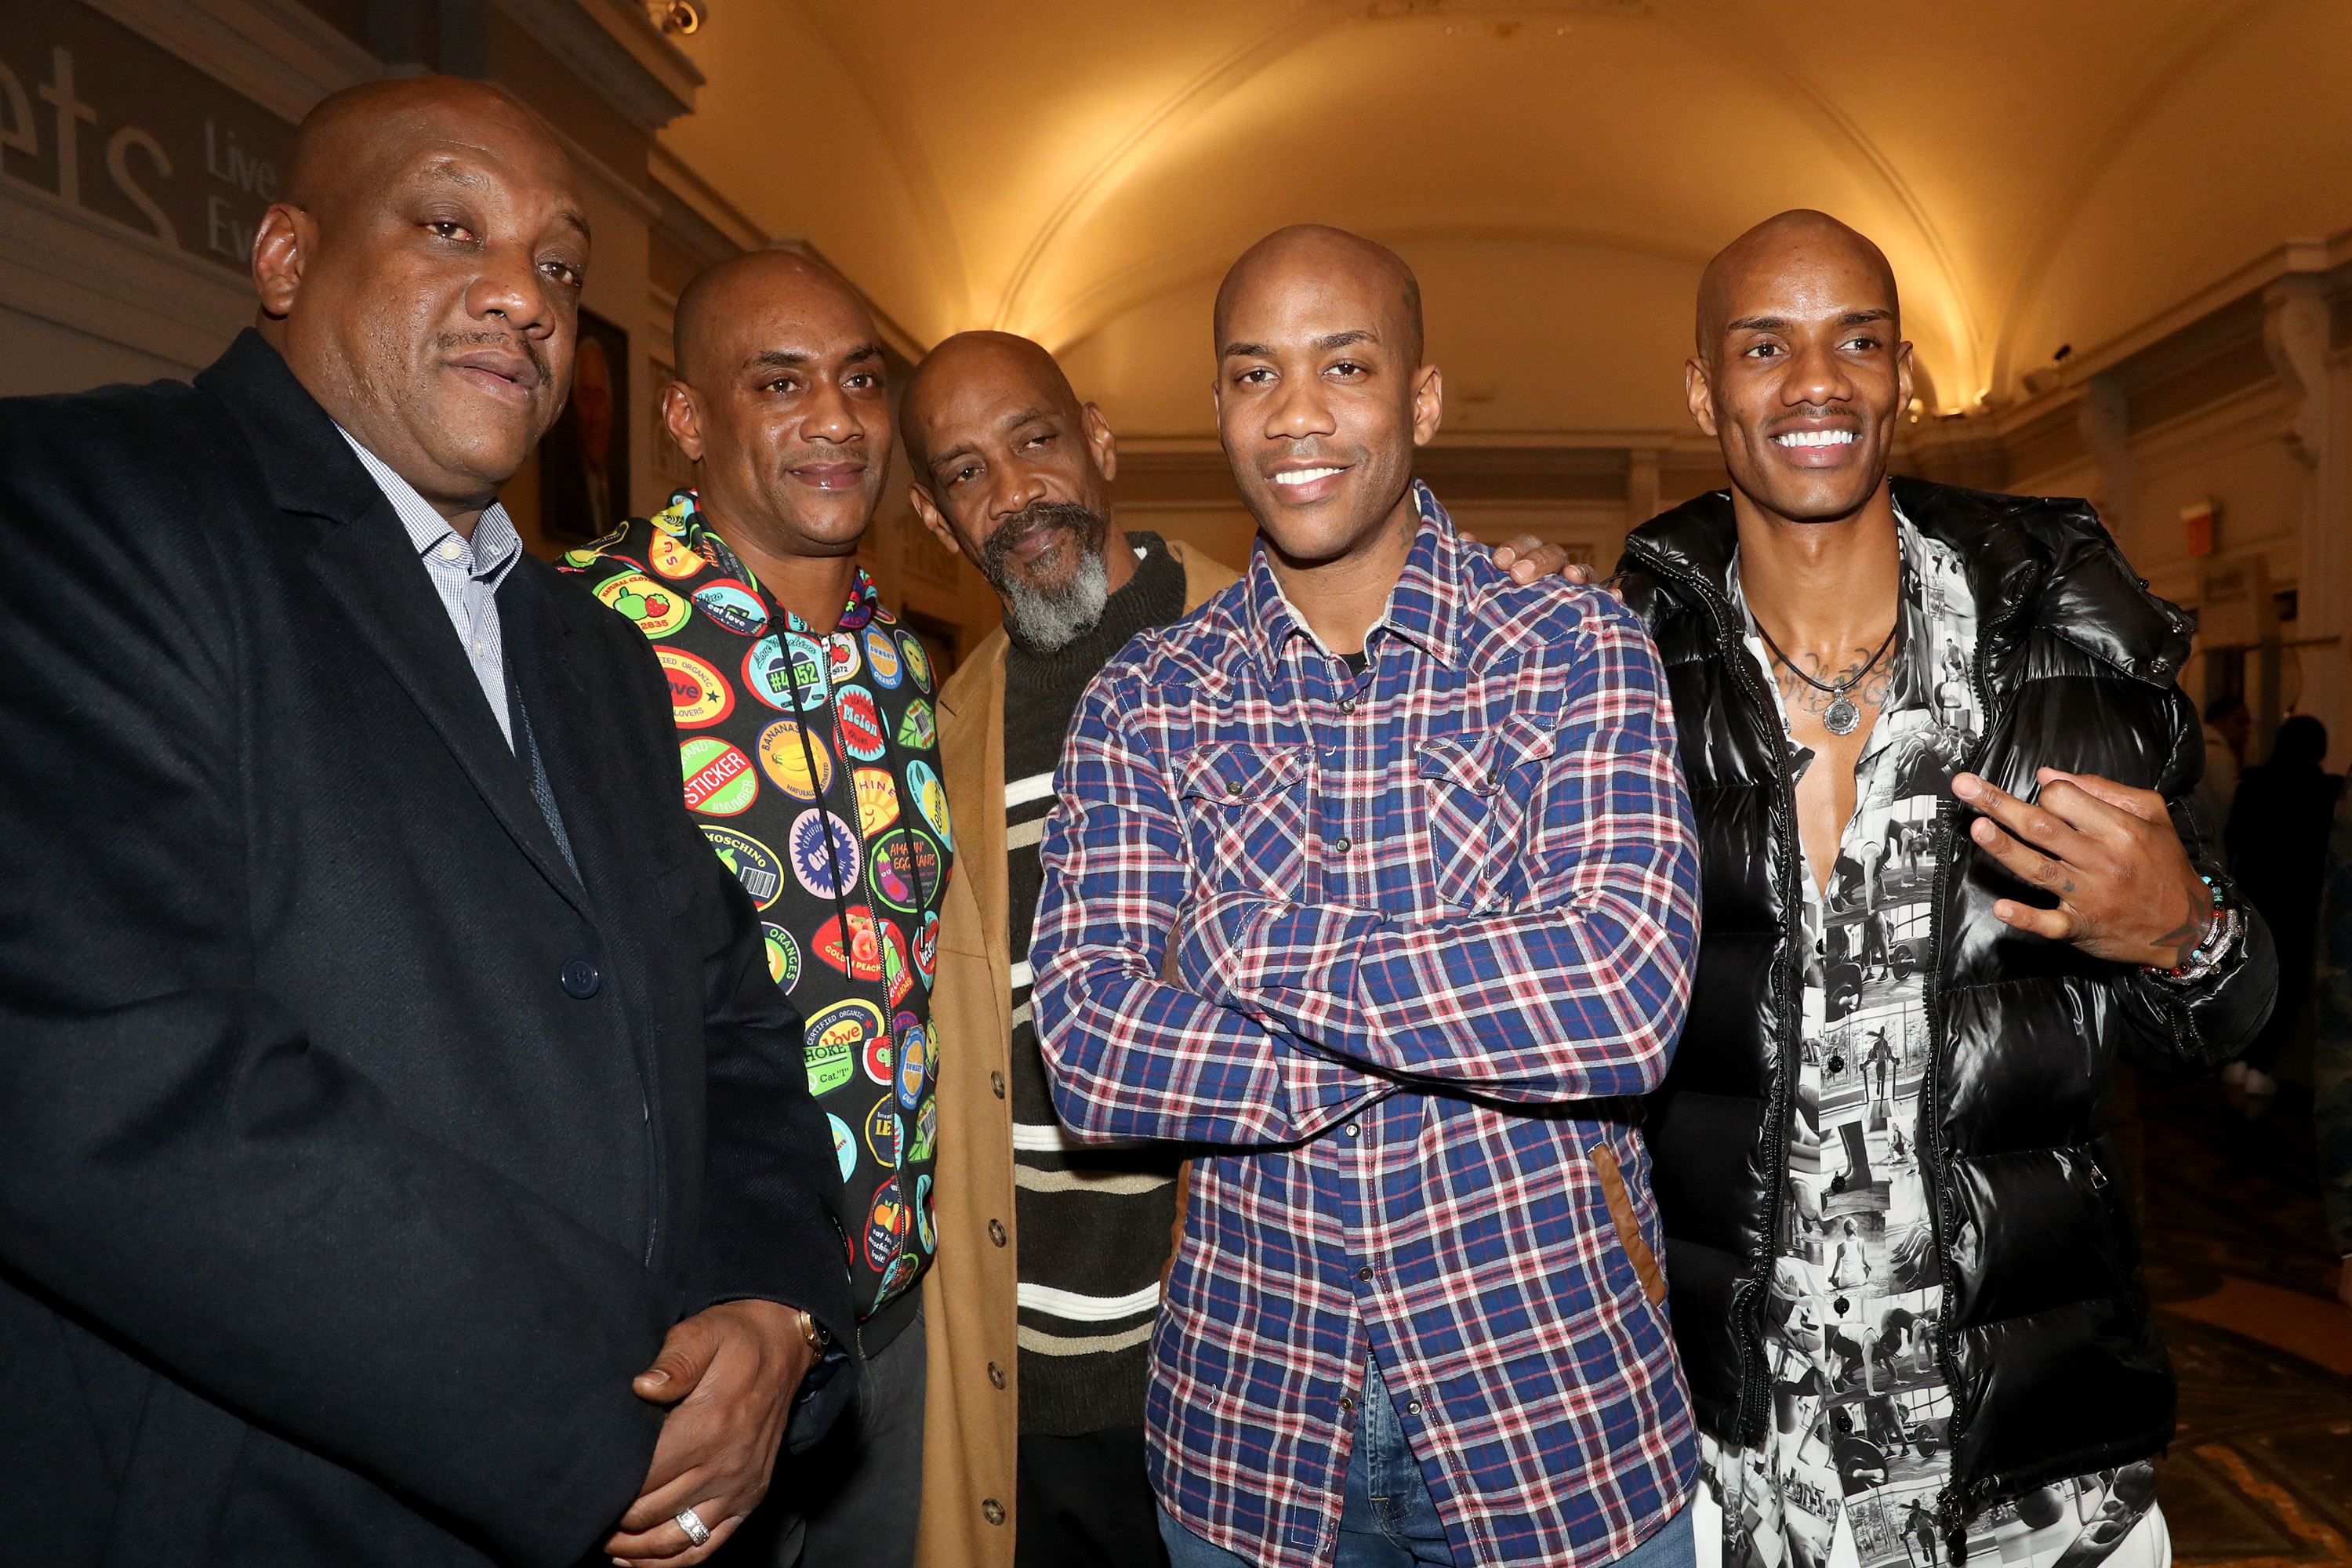 The Marbury brothers including Stephon Marbury